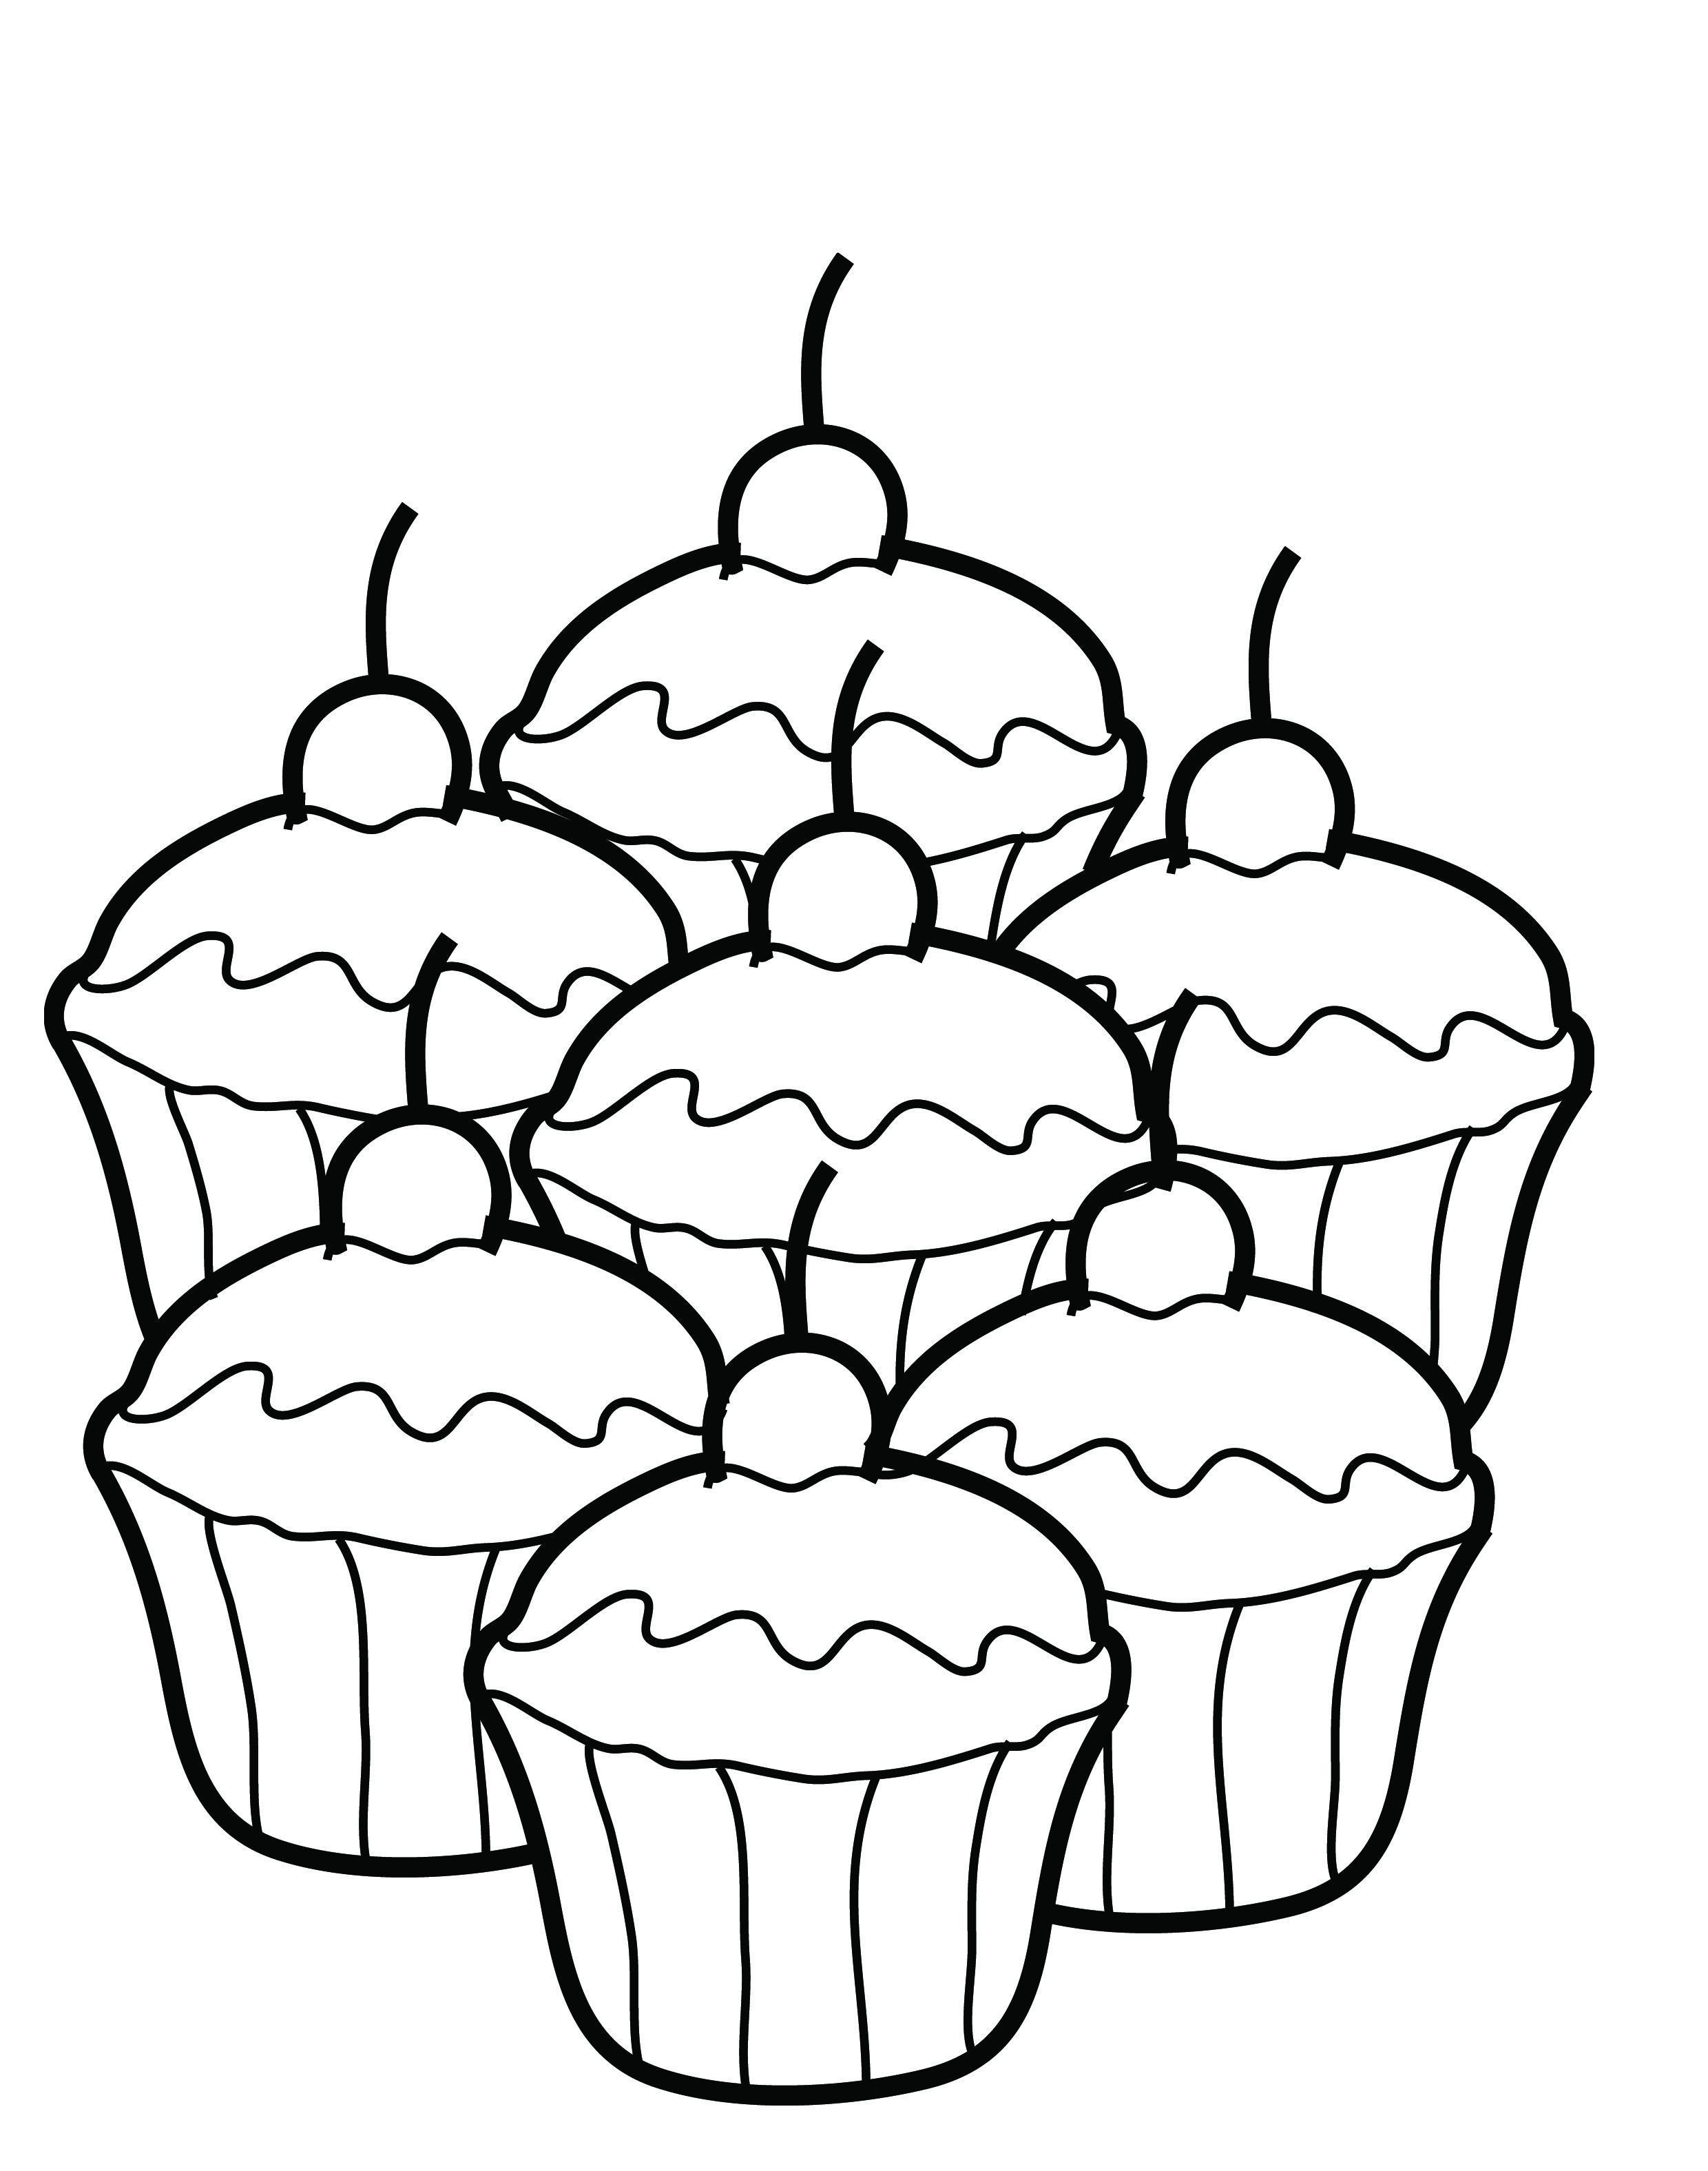 coloring pages kids 44 coloring page free miscellaneous coloring - Children Coloring Pages